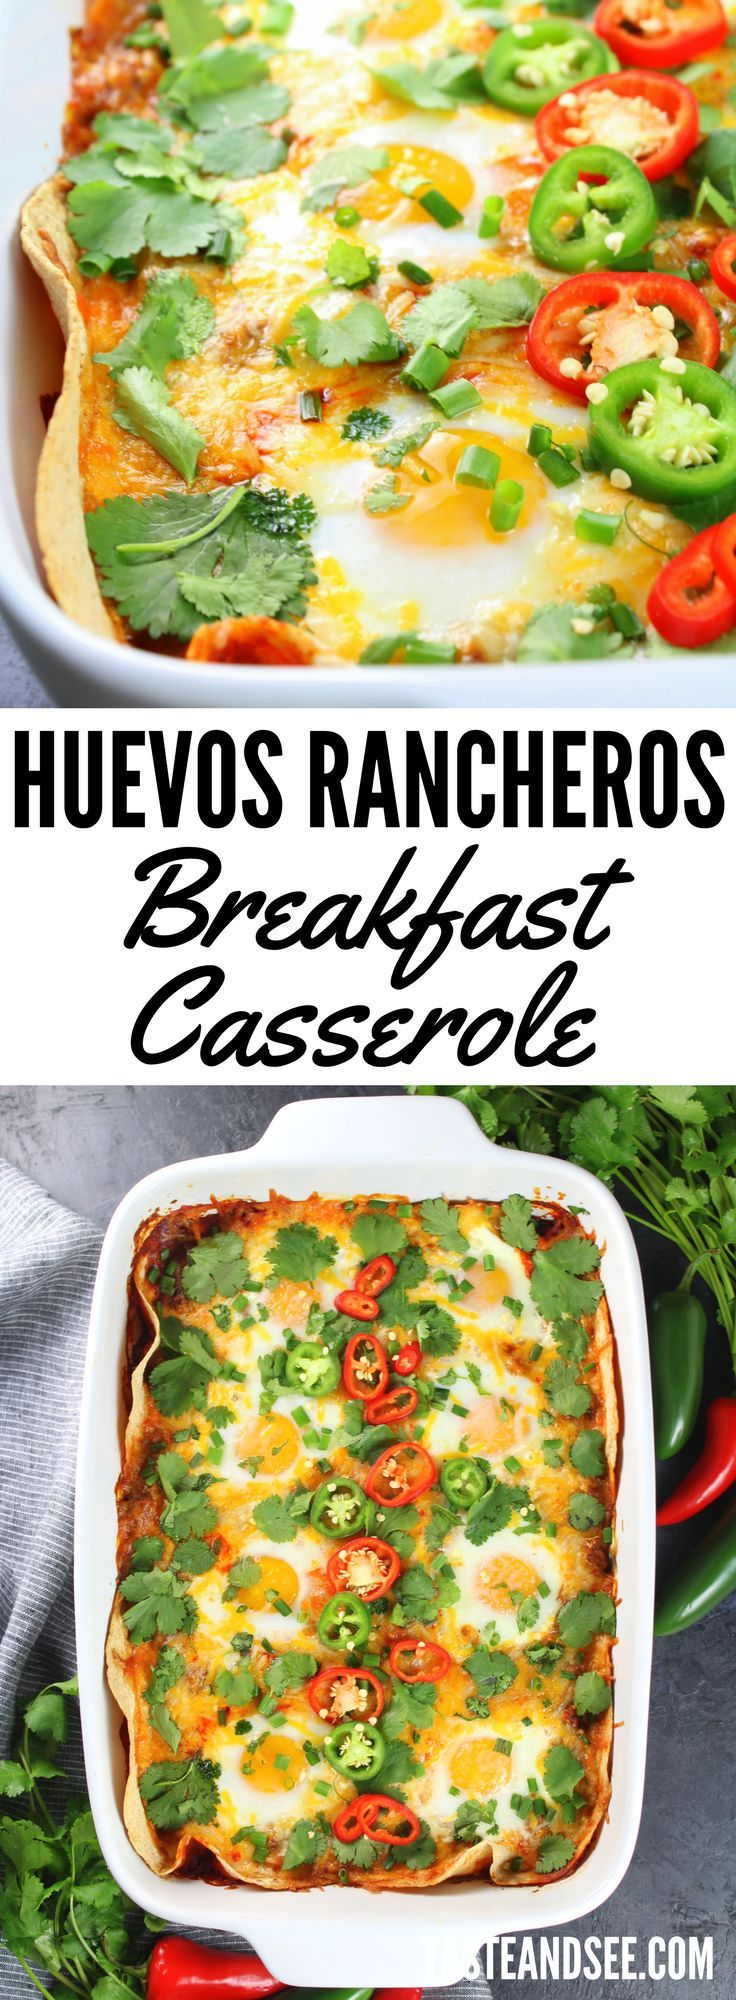 Huevos Rancheros Breakfast Casserole = all-in-one scrumptious #breakfast  casserole.  Full of healthy goodness and tons of yummy #mexican  flavors! https://tasteandsee.com